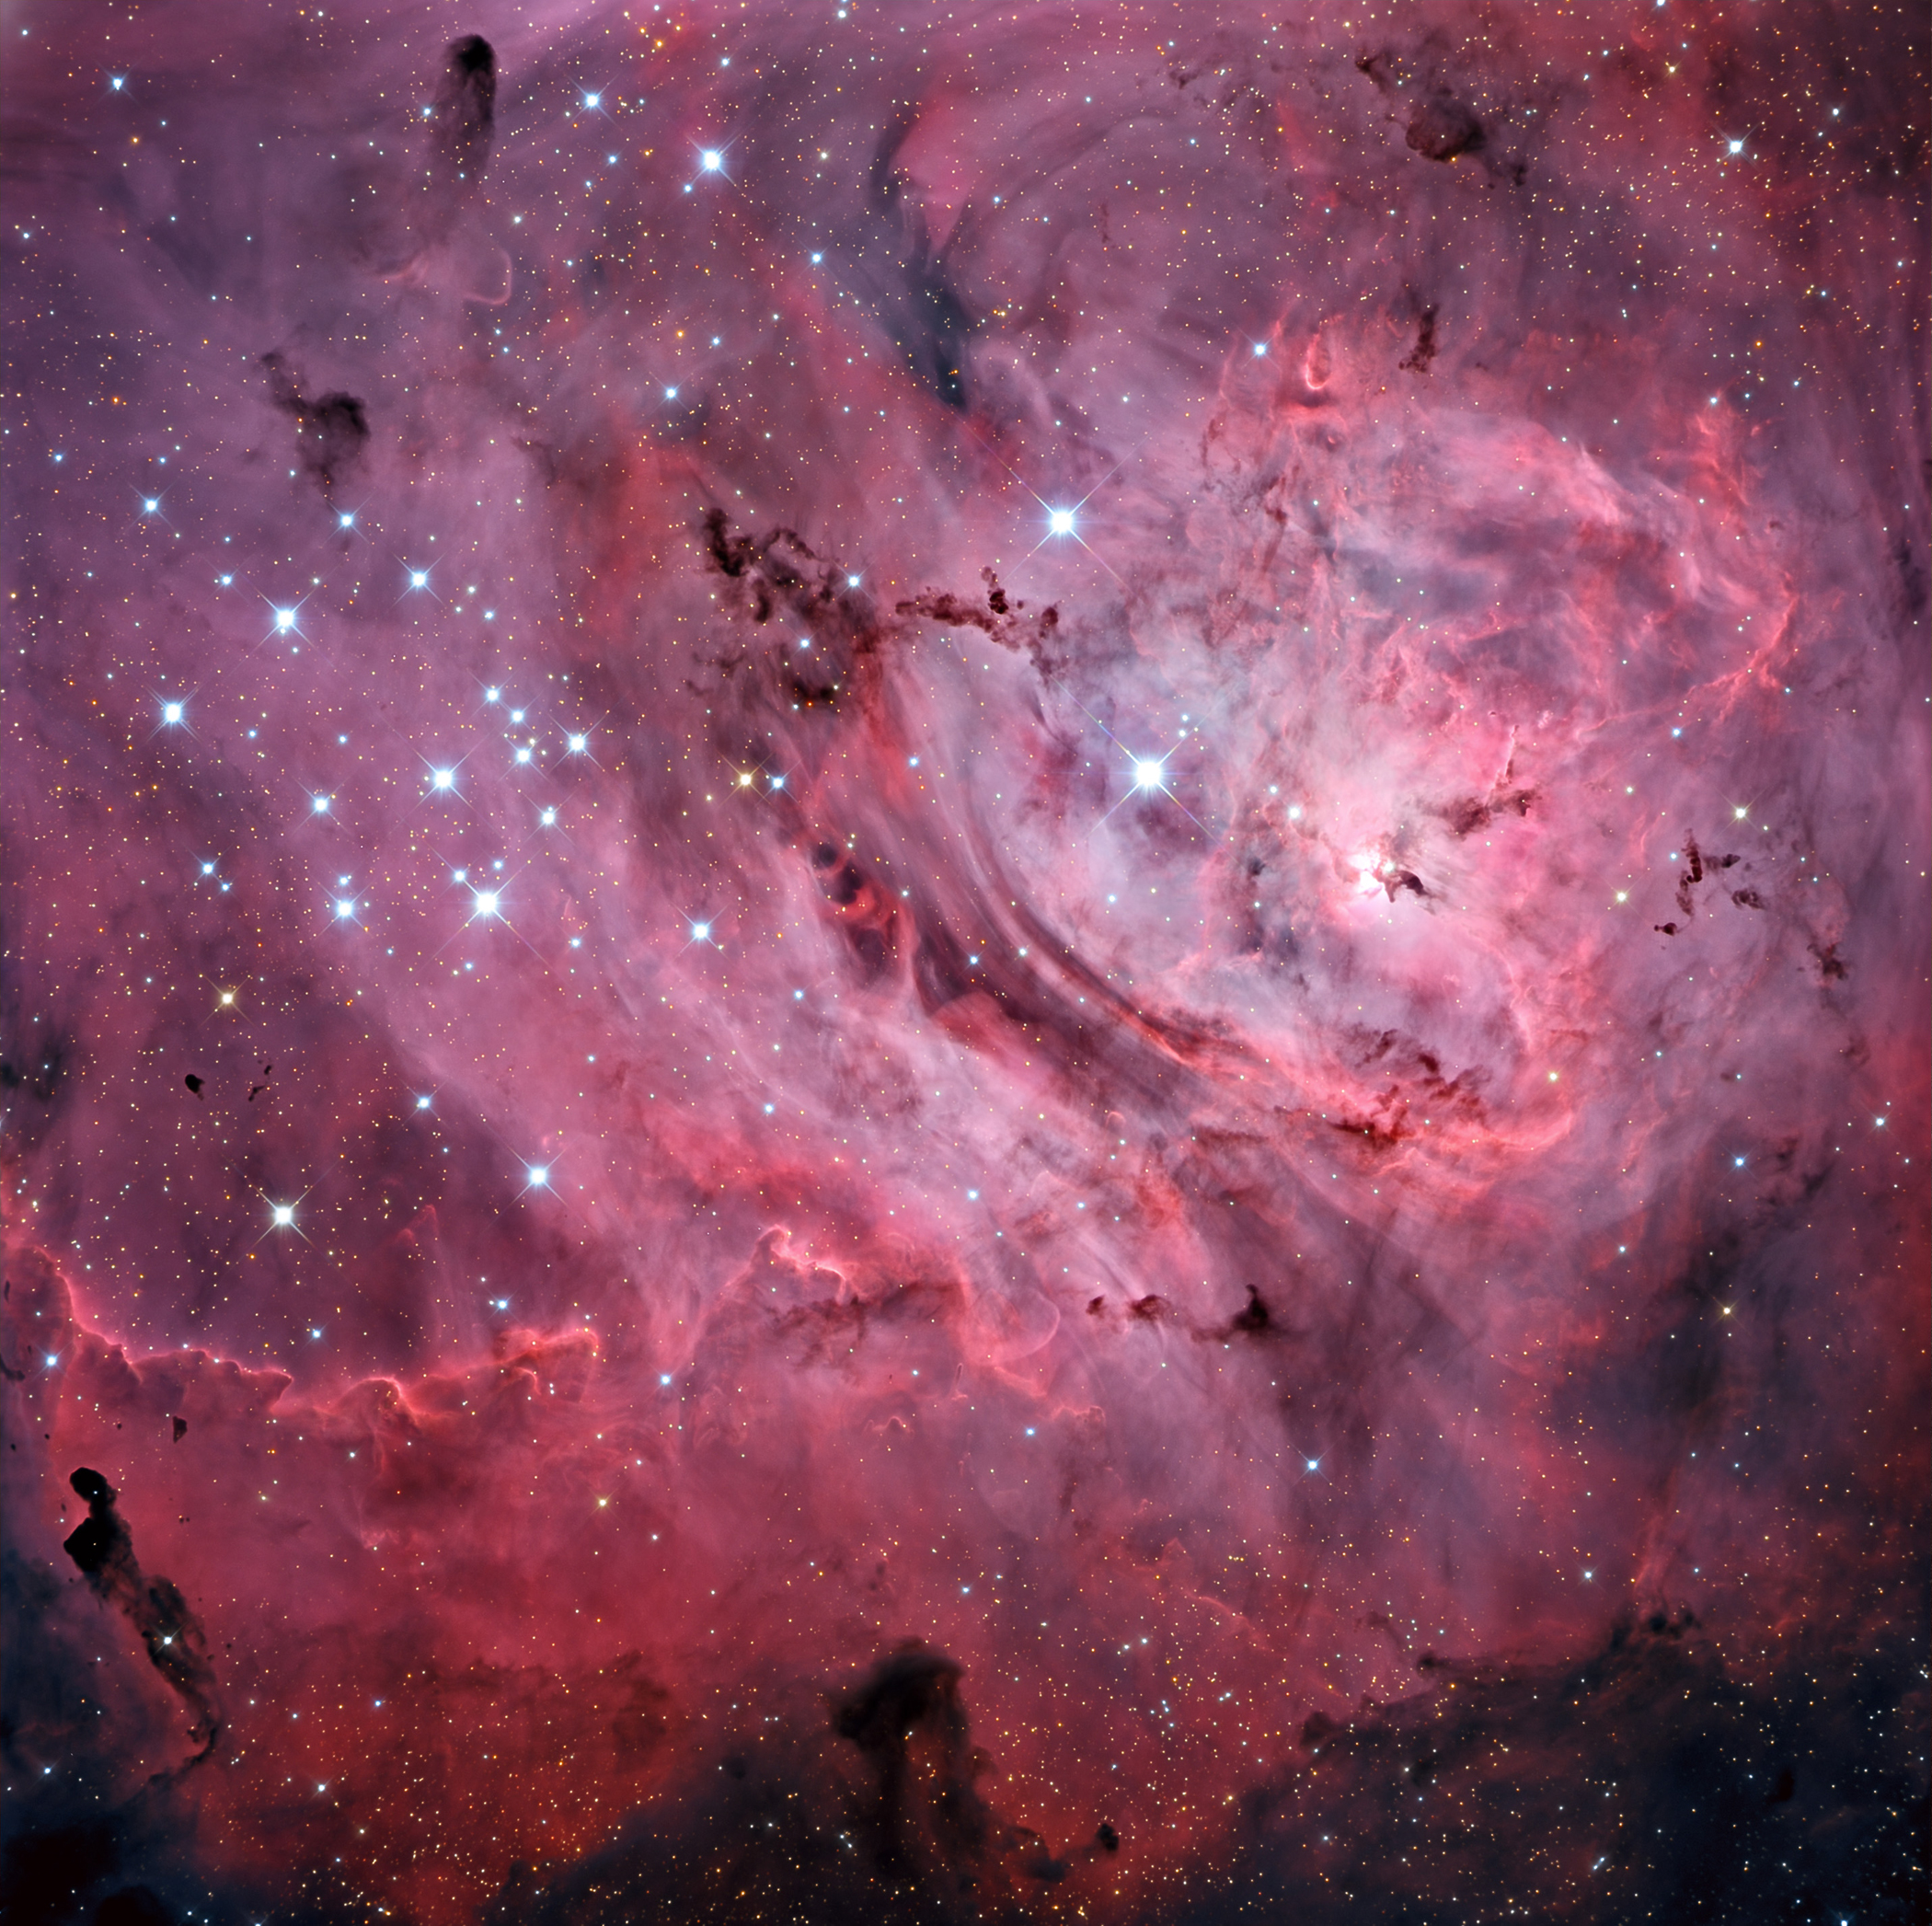 The Lagoon Nebula, a bright cloud of dust and gas 4,000 light years away and 40 light years across, glows brilliantly due to hot energetic young stars forming within. It can even be glimpsed with the unaided eye under dark skies away from city lights.  The photo was captured at the Mount Lemmon SkyCenter in Arizona and released on July 15, 2015.